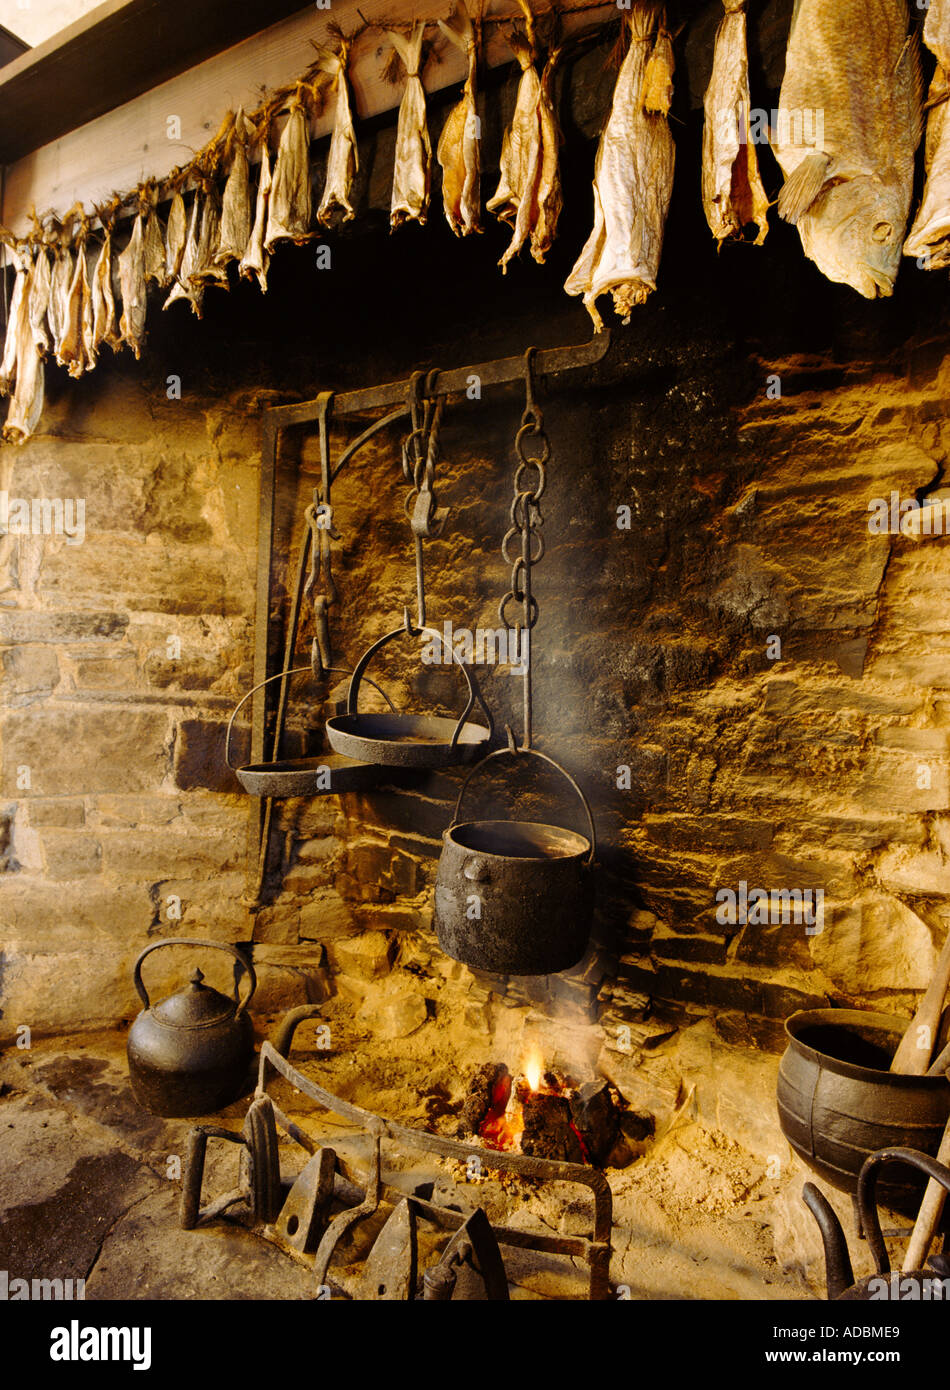 dh Farm museum CORRIGALL ORKNEY Farmhouse fireplace kettle pots and dried fish drying hearth open fire Stock Photo